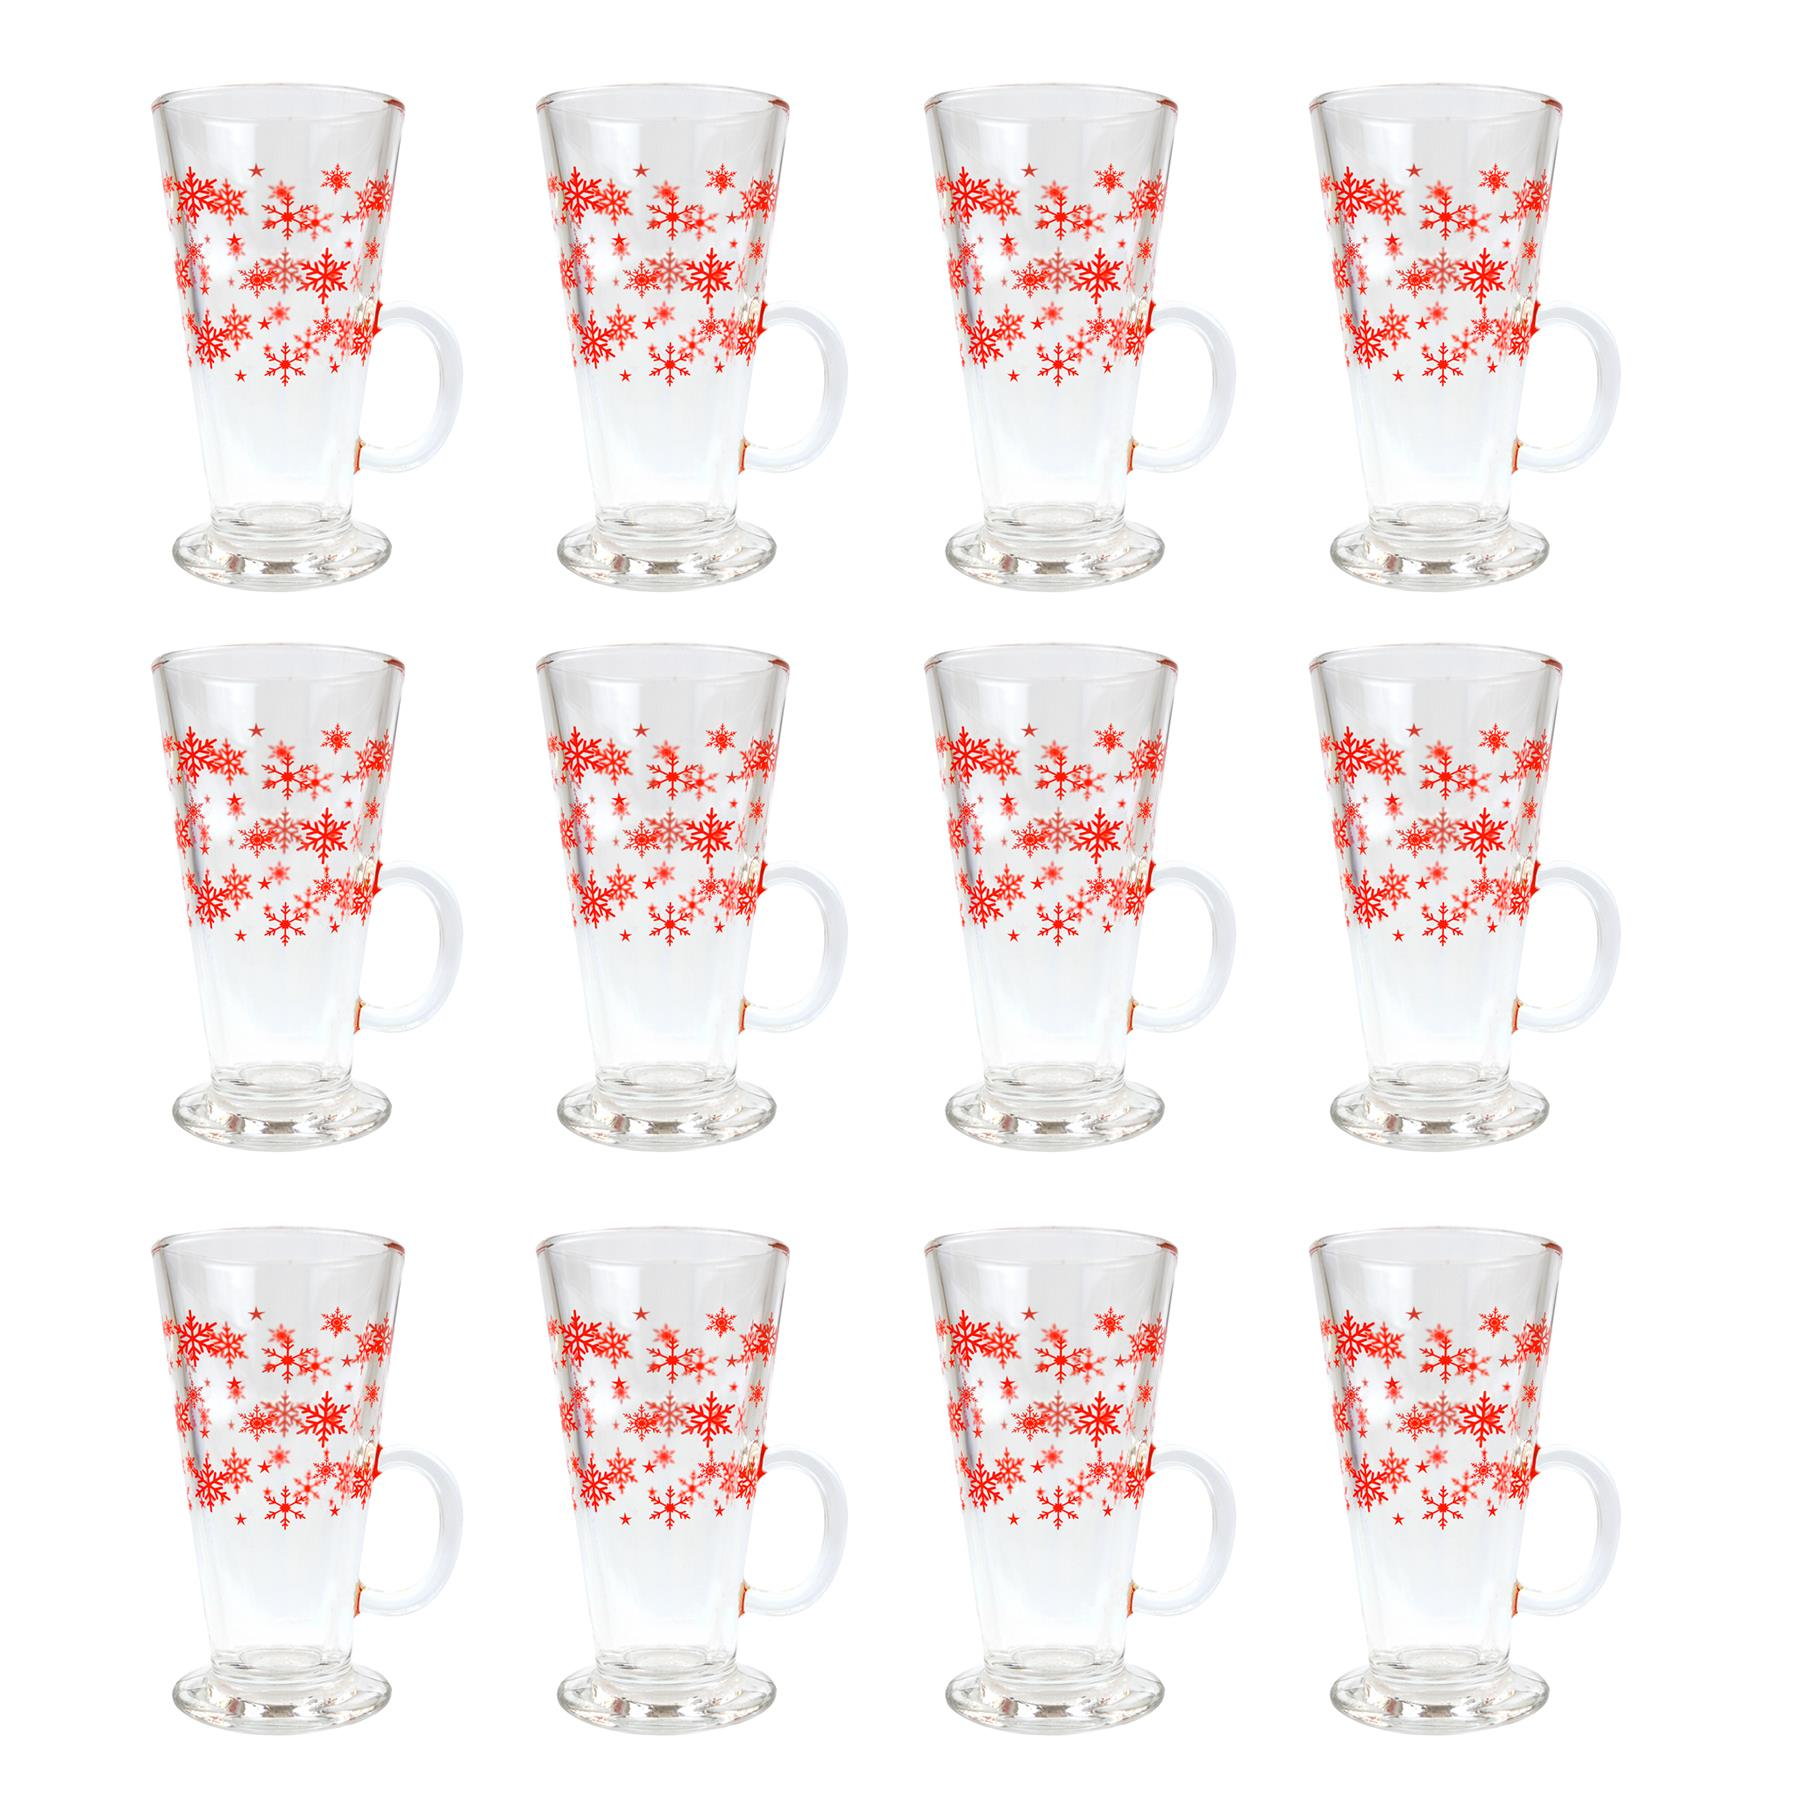 PACK OF 12 CHRISTMAS LATTE GLASSES